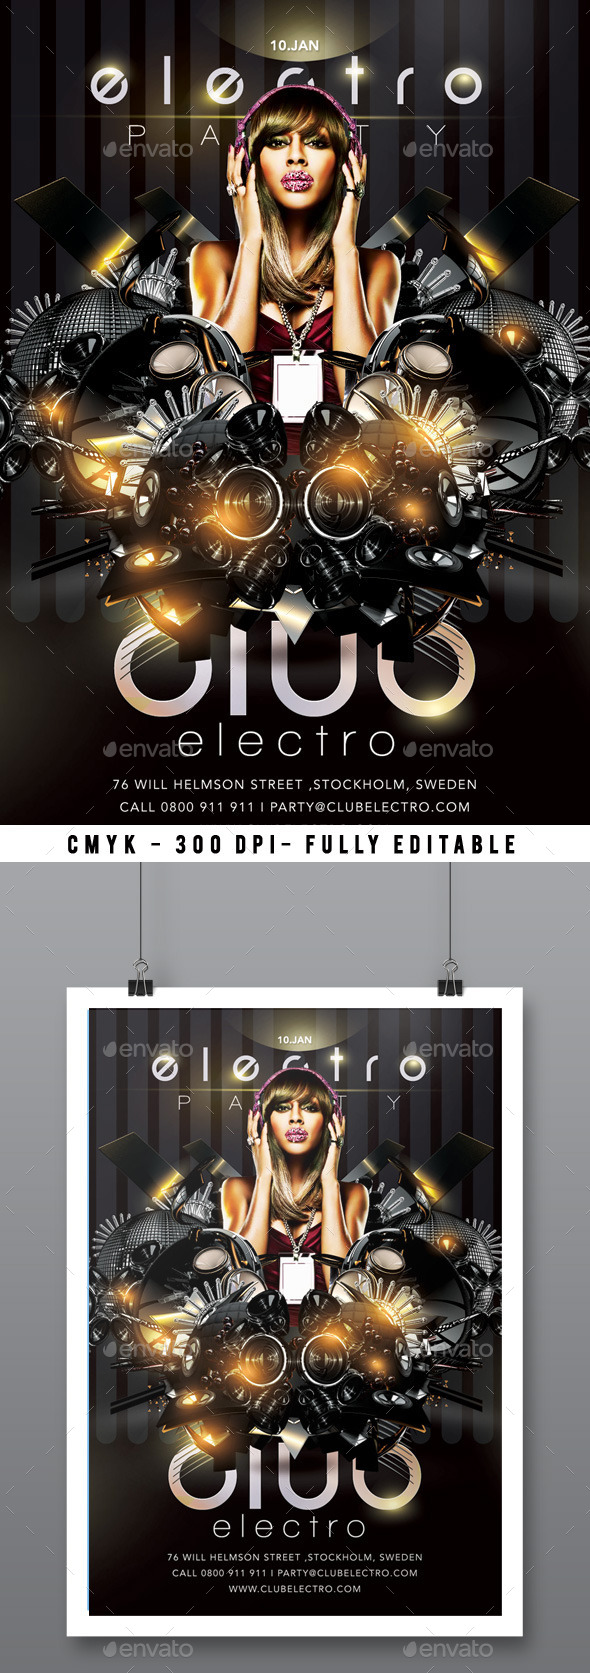 Flyer Electro Sound Party In Club - Clubs & Parties Events